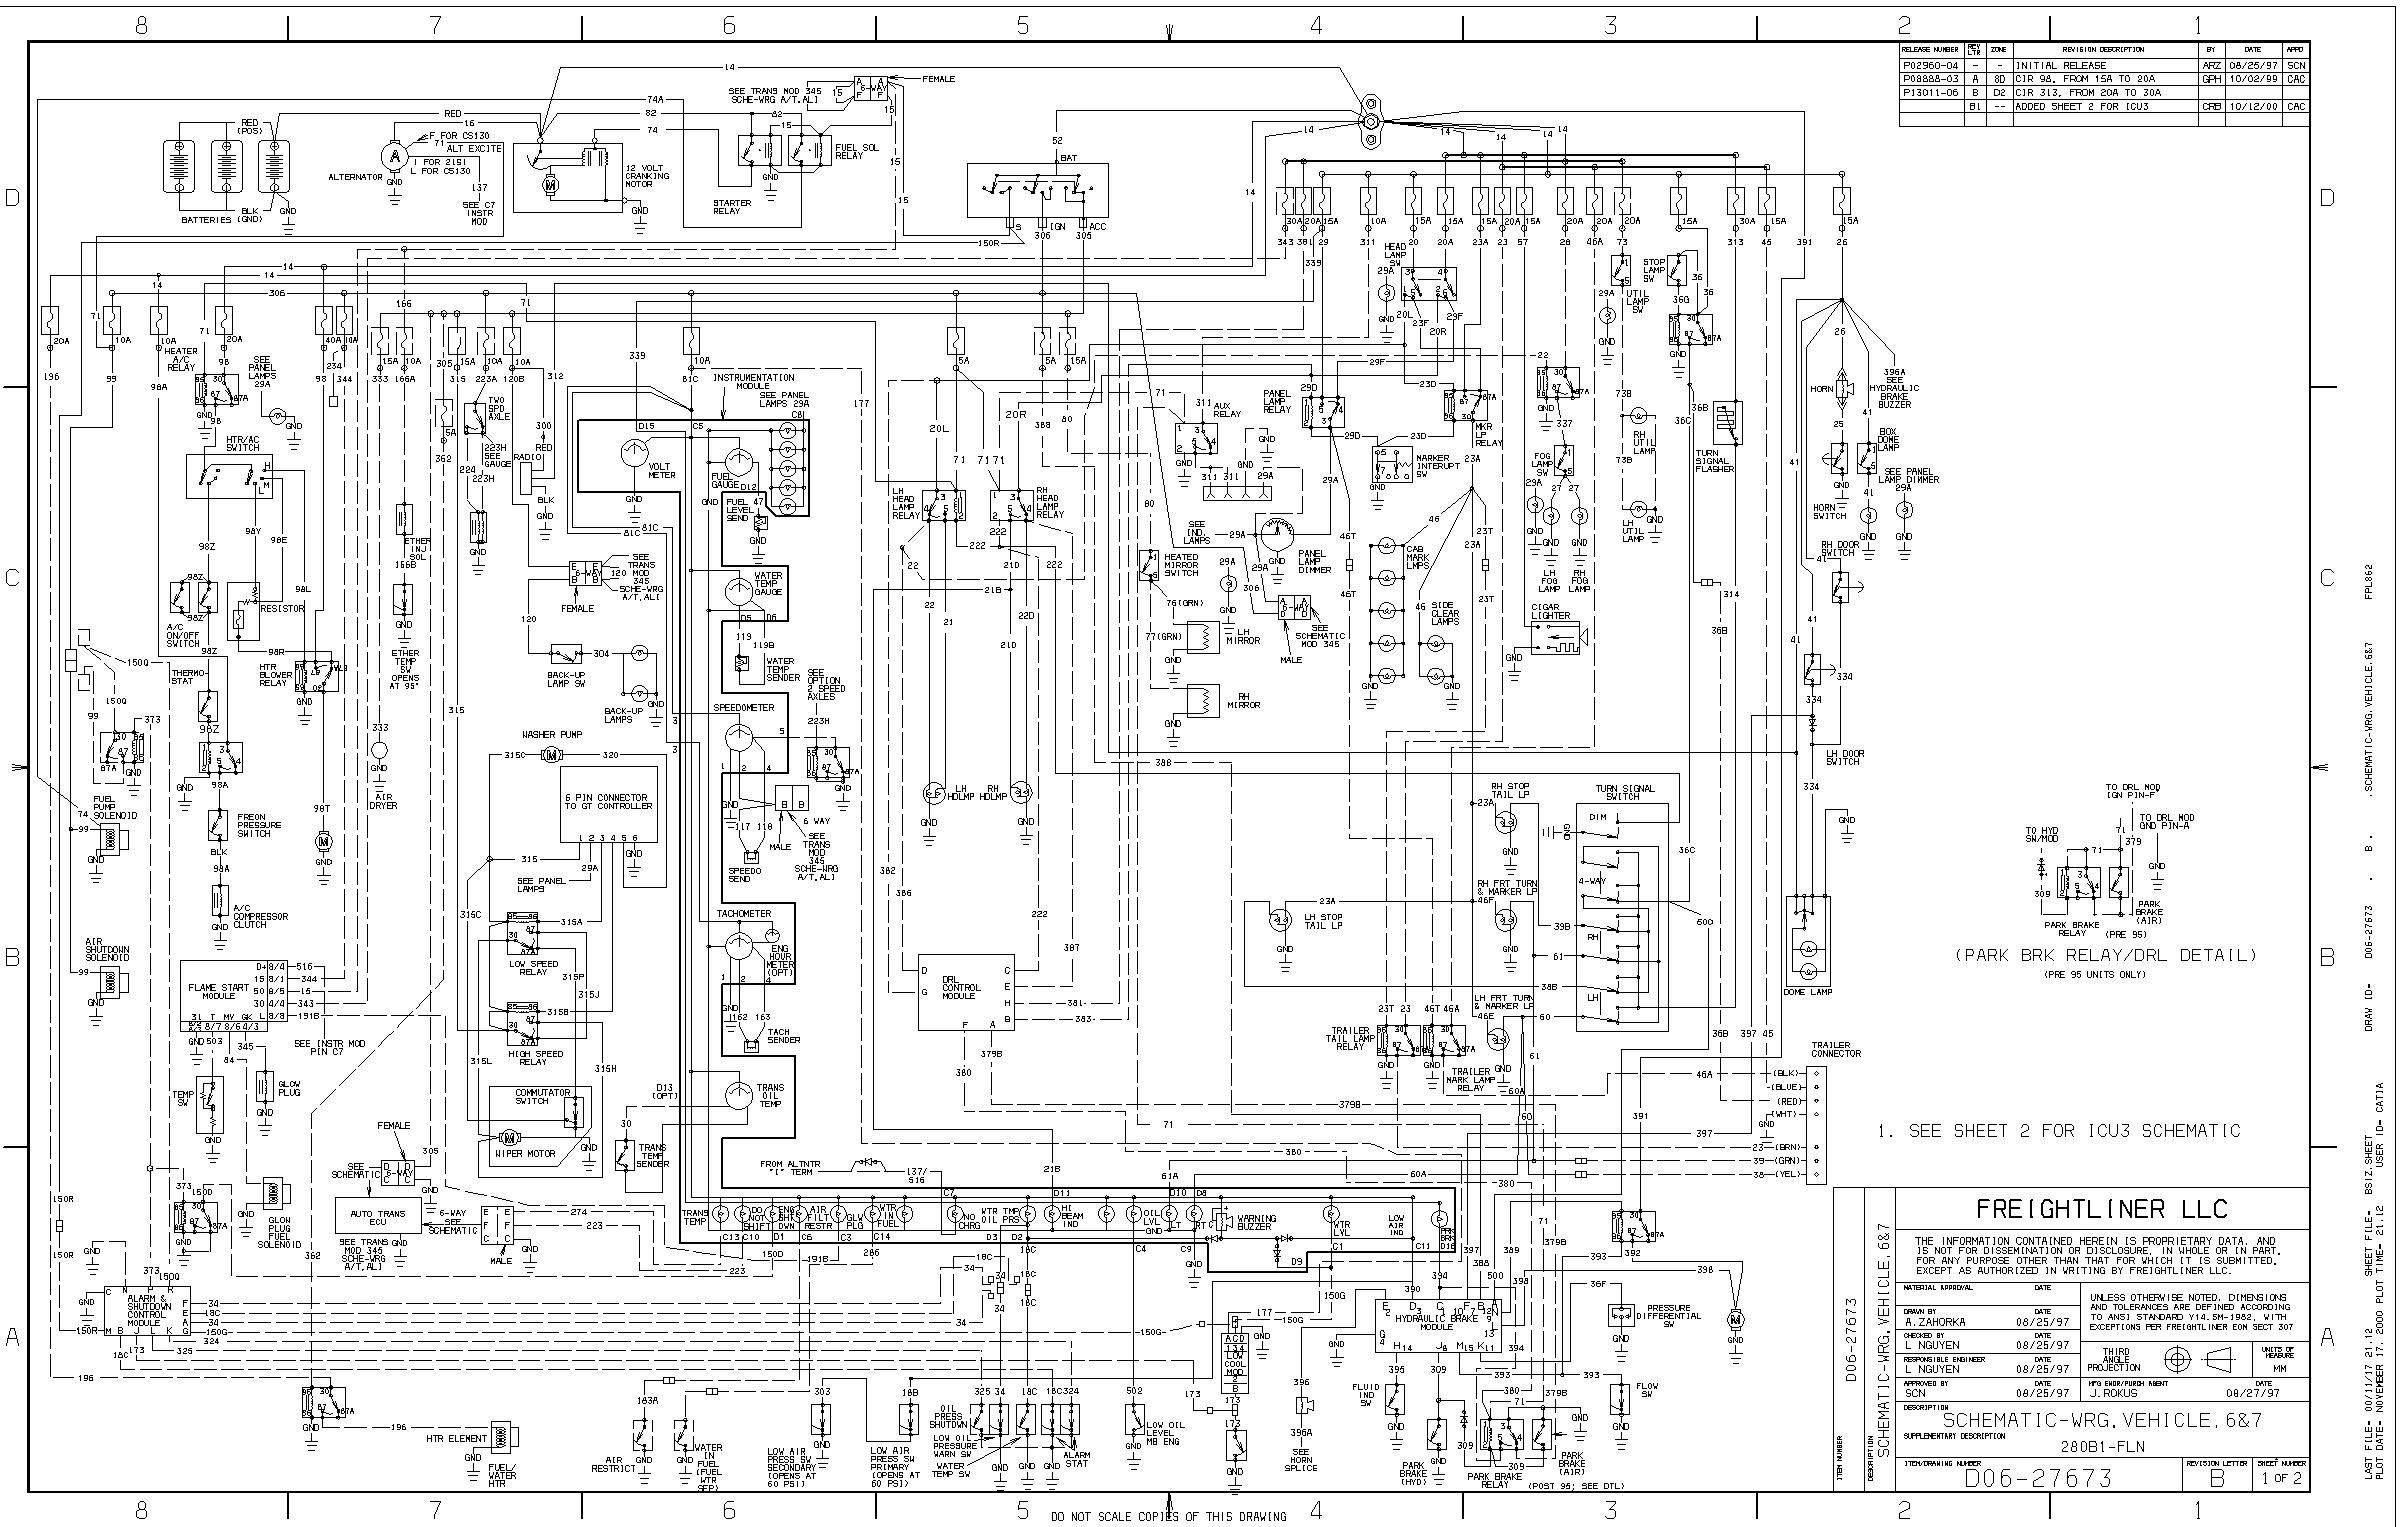 2001 Mercury Sable Engine Diagram Fuse Box Diagram Also Free Image About Wiring Diagram and Schematic Of 2001 Mercury Sable Engine Diagram